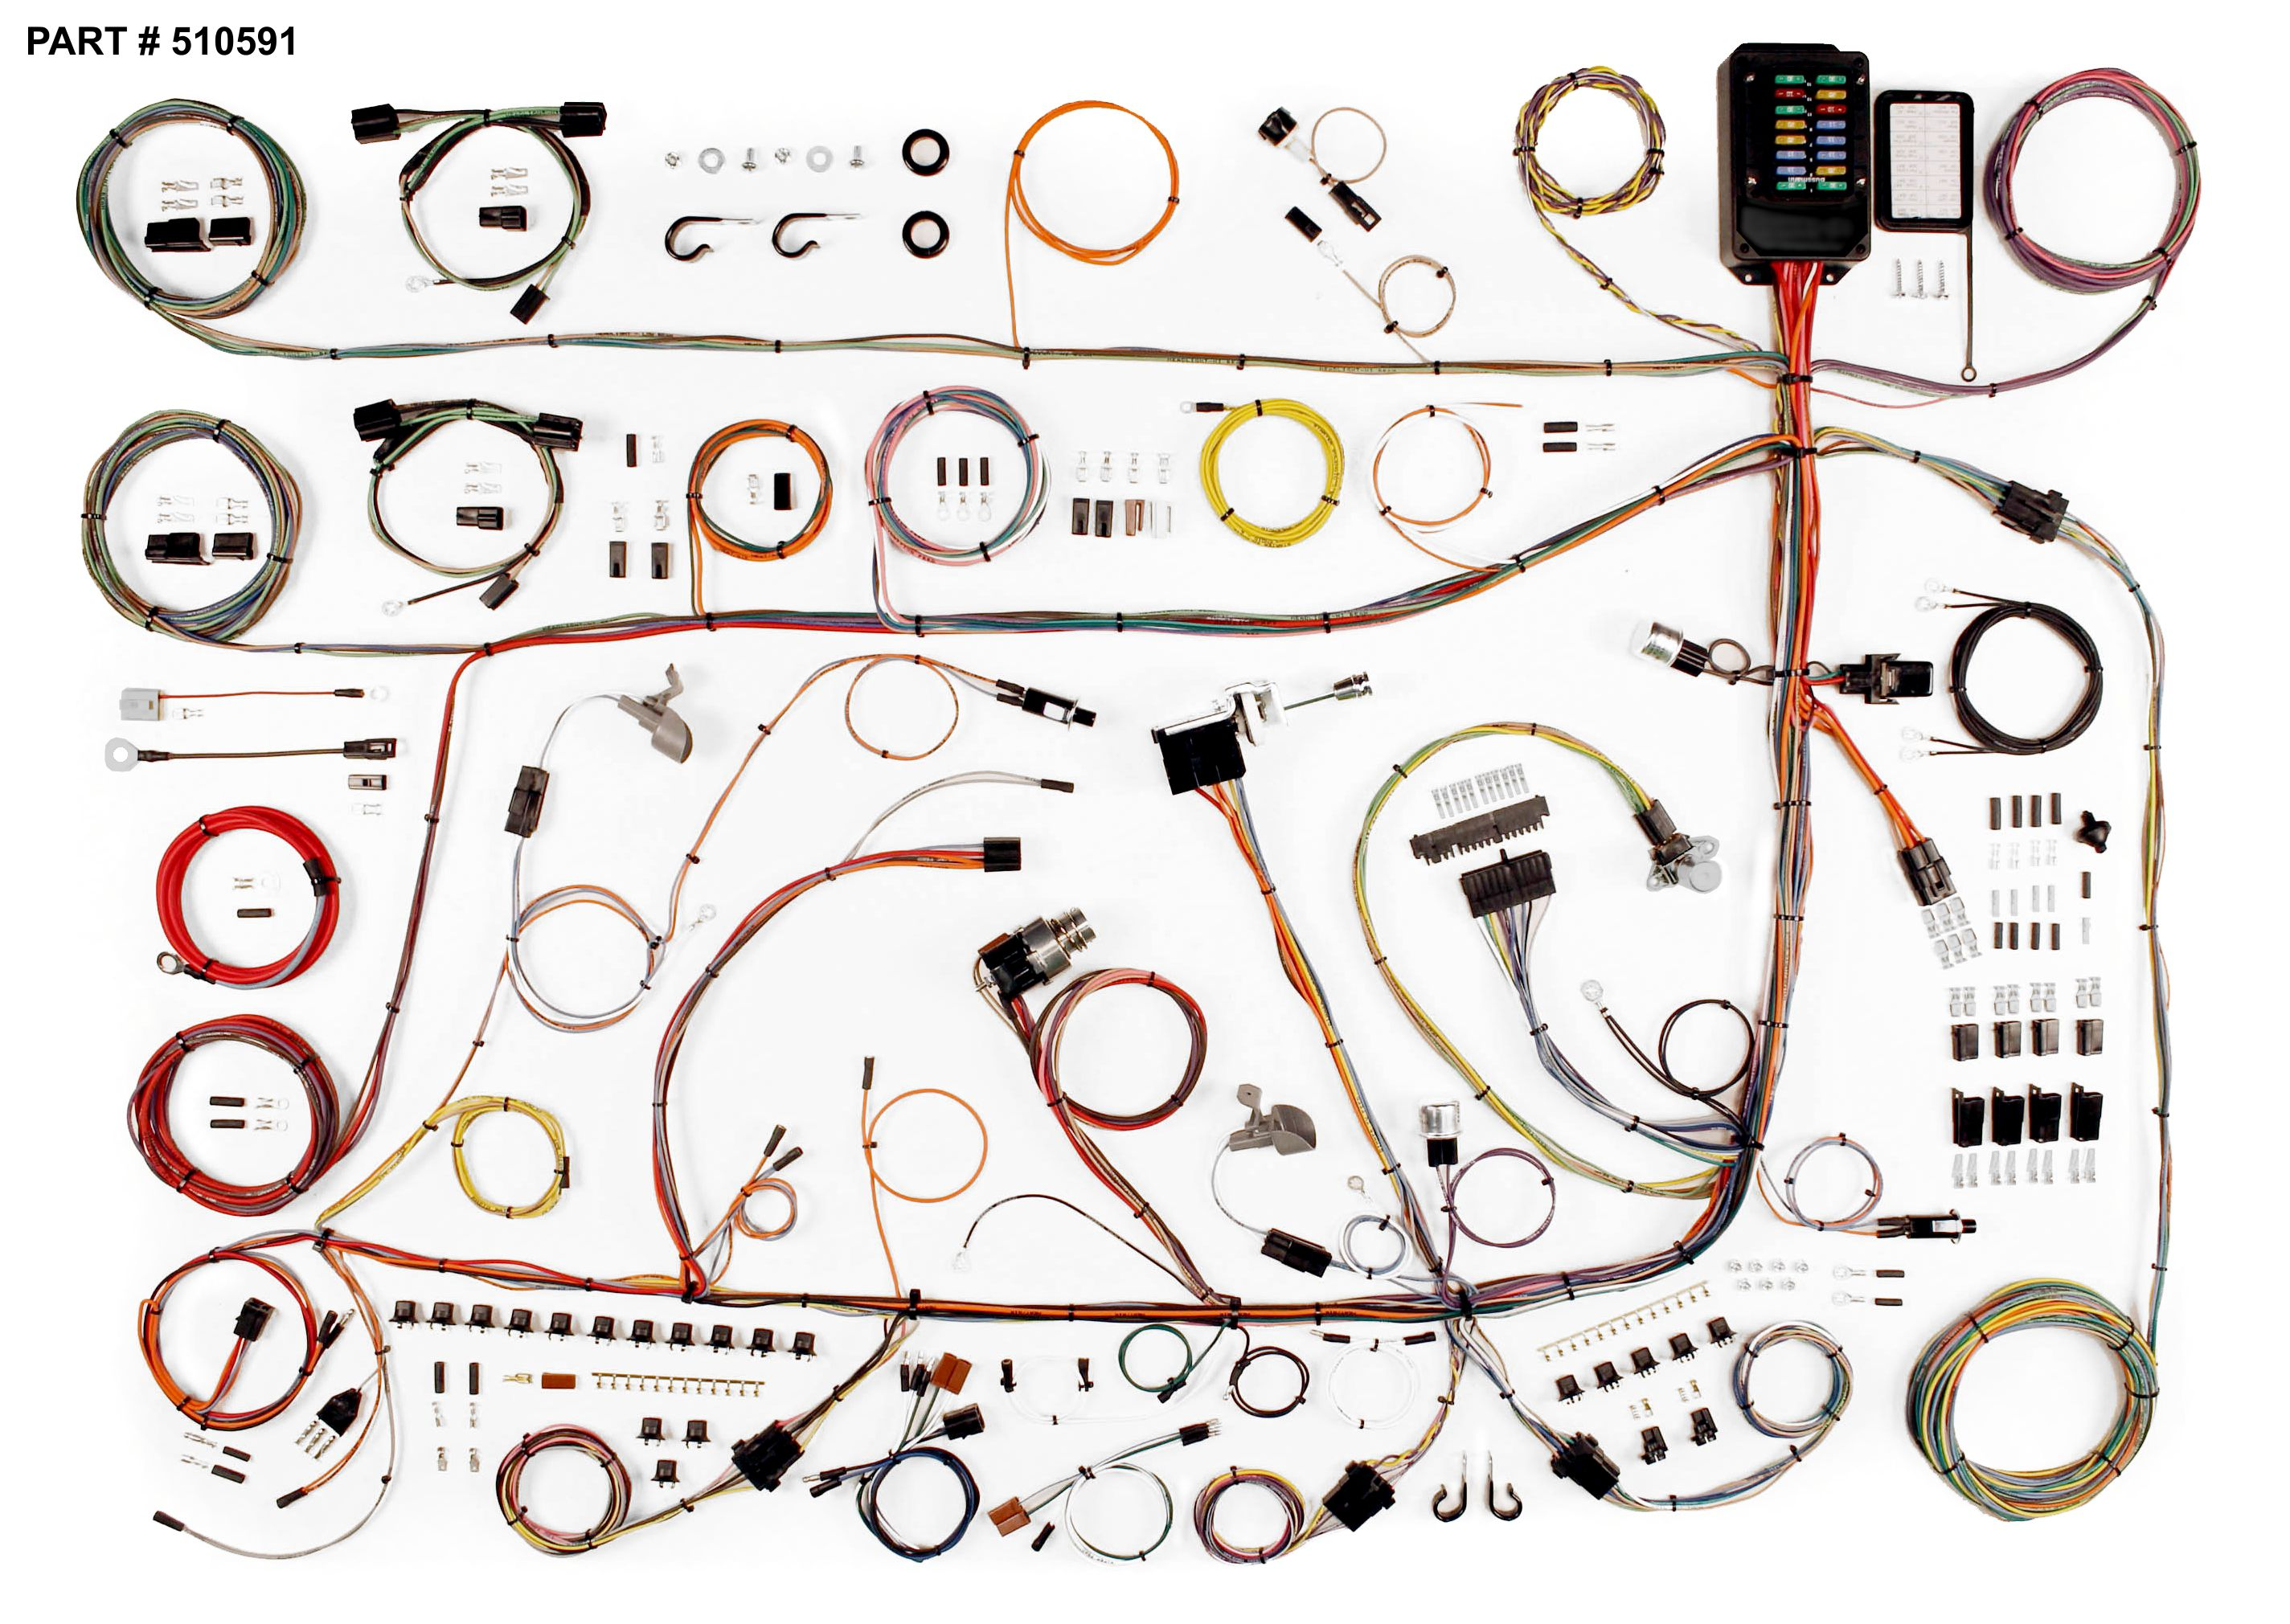 1960-64 Ford Galaxie & Mercury Fullsize RestoMod Wiring Harness System